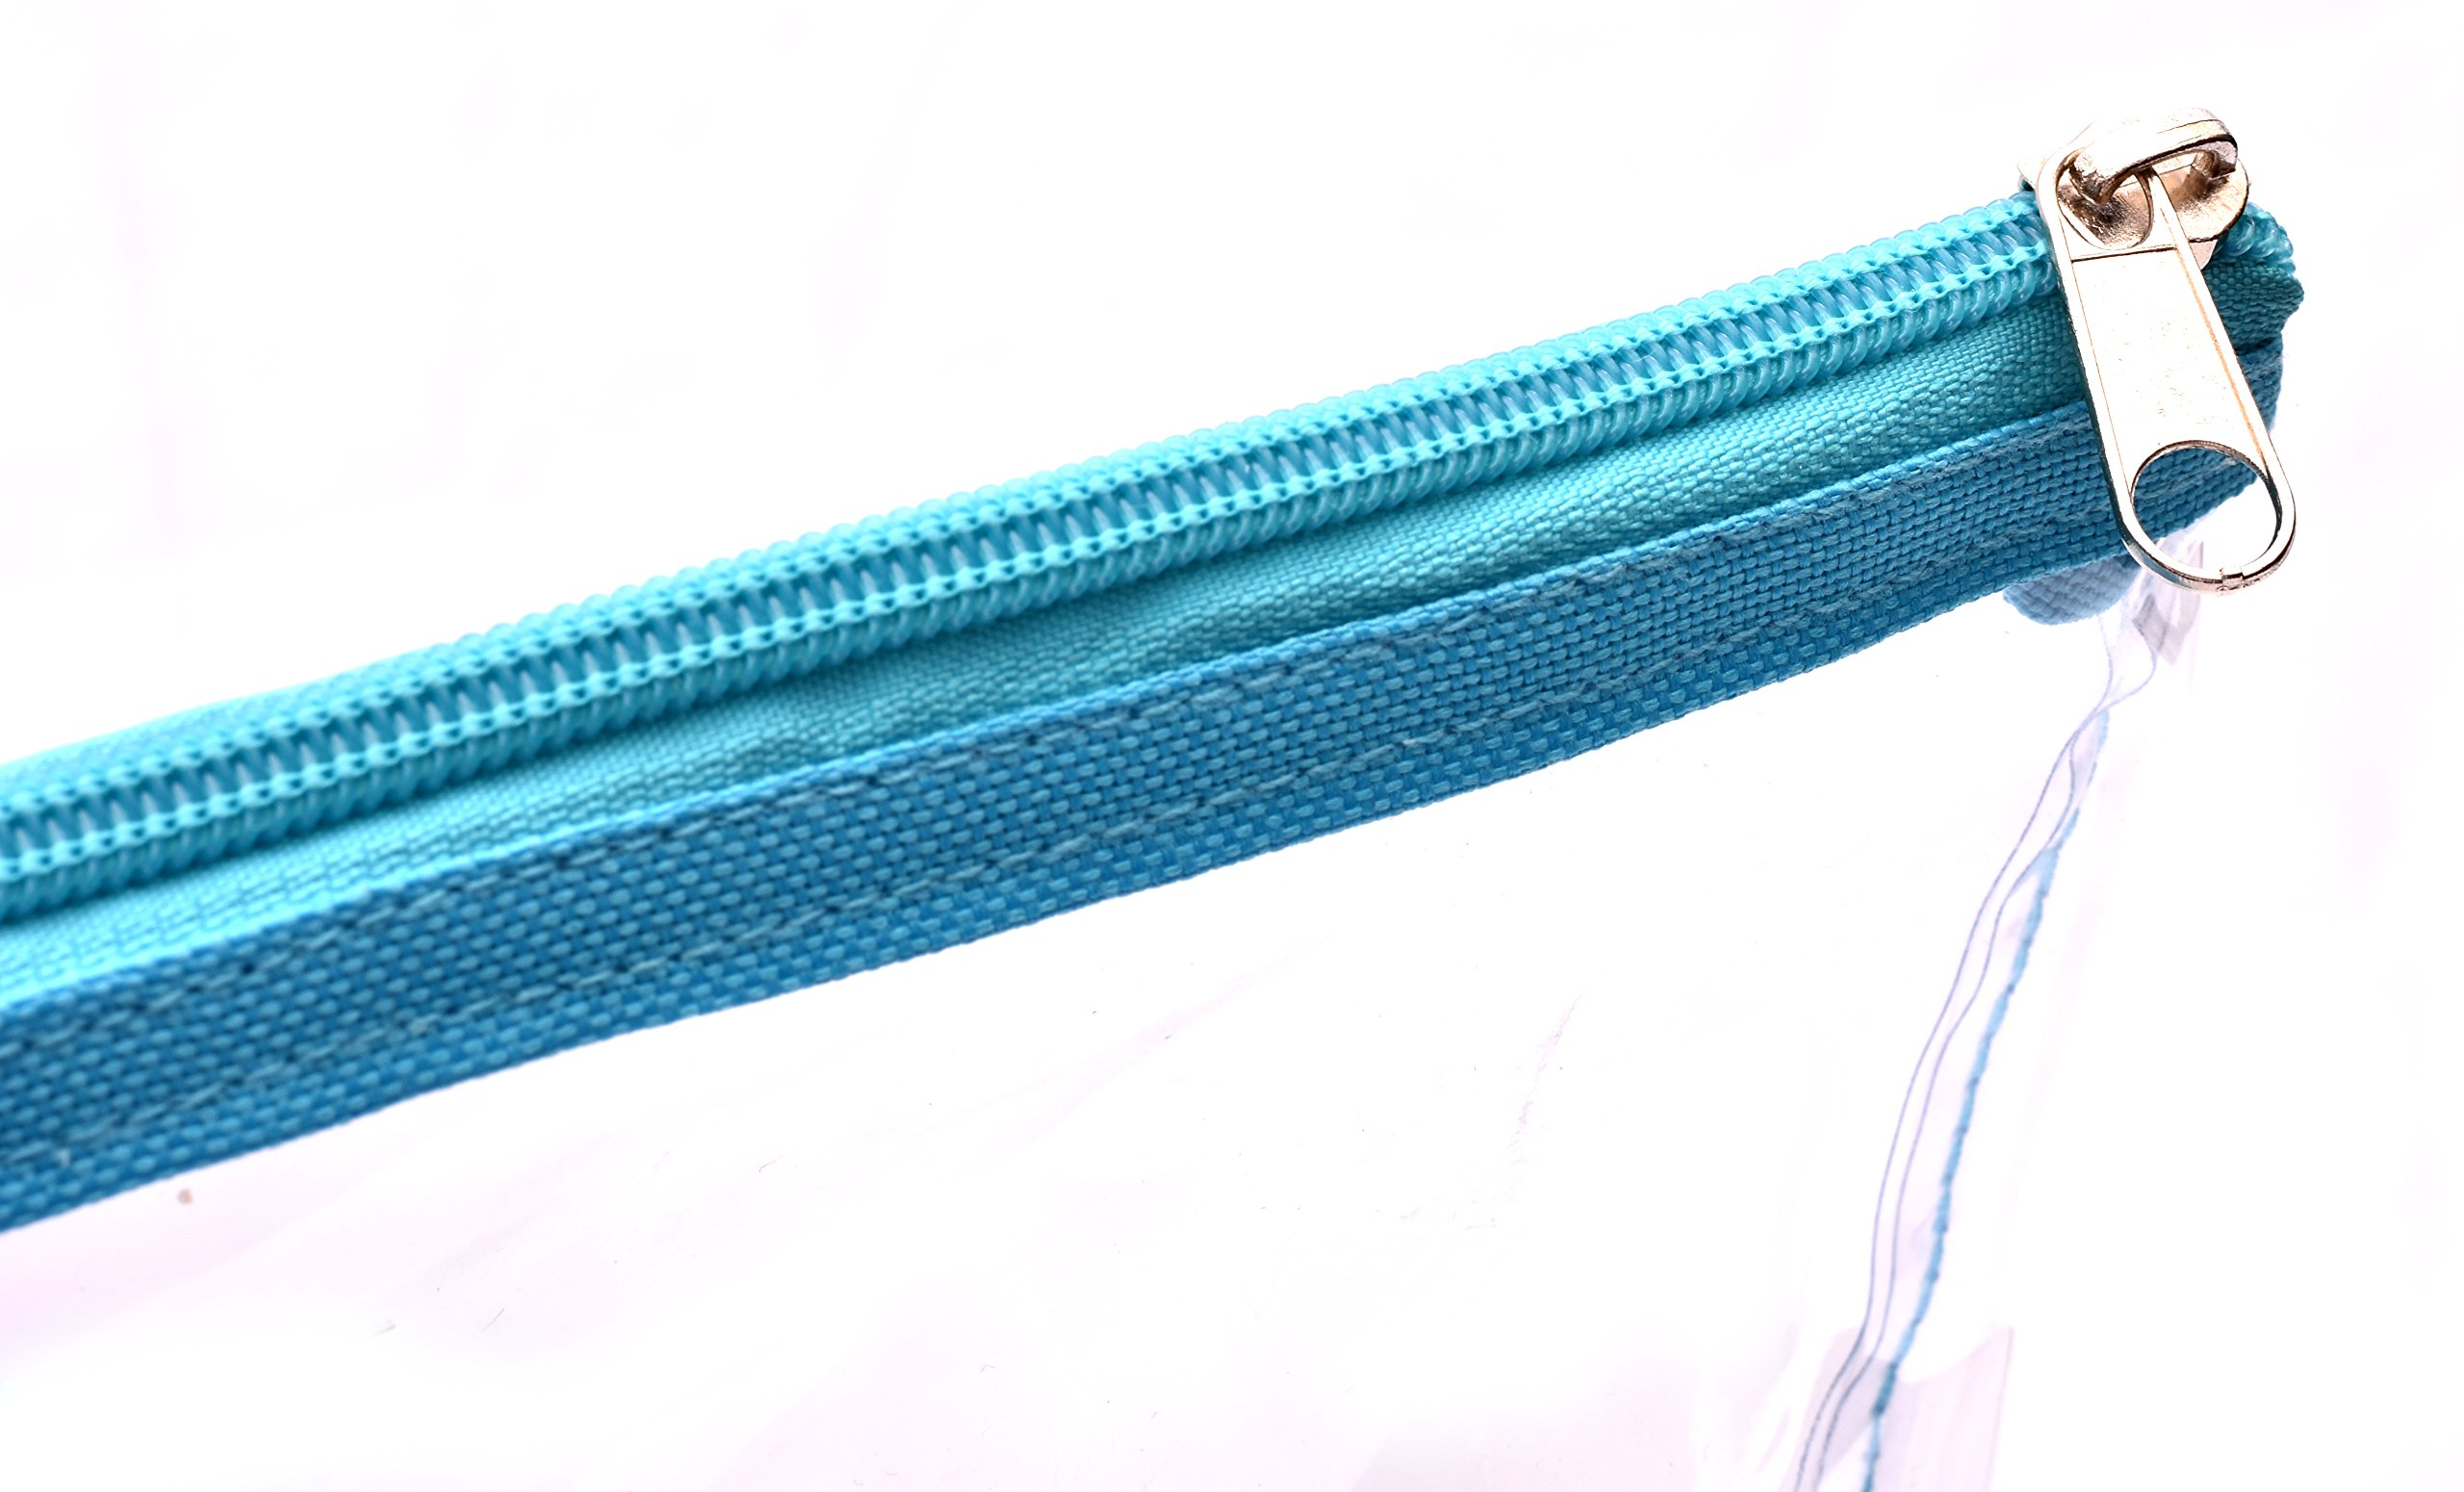 Clear Tote Bag - Top Zipper Closure, Long Shoulder Strap and Attractive Fabric Trimming. Perfect Transparent Travel Tote for all Places and Events where Clear Bags are Required. (Teal) by Handy Laundry (Image #5)